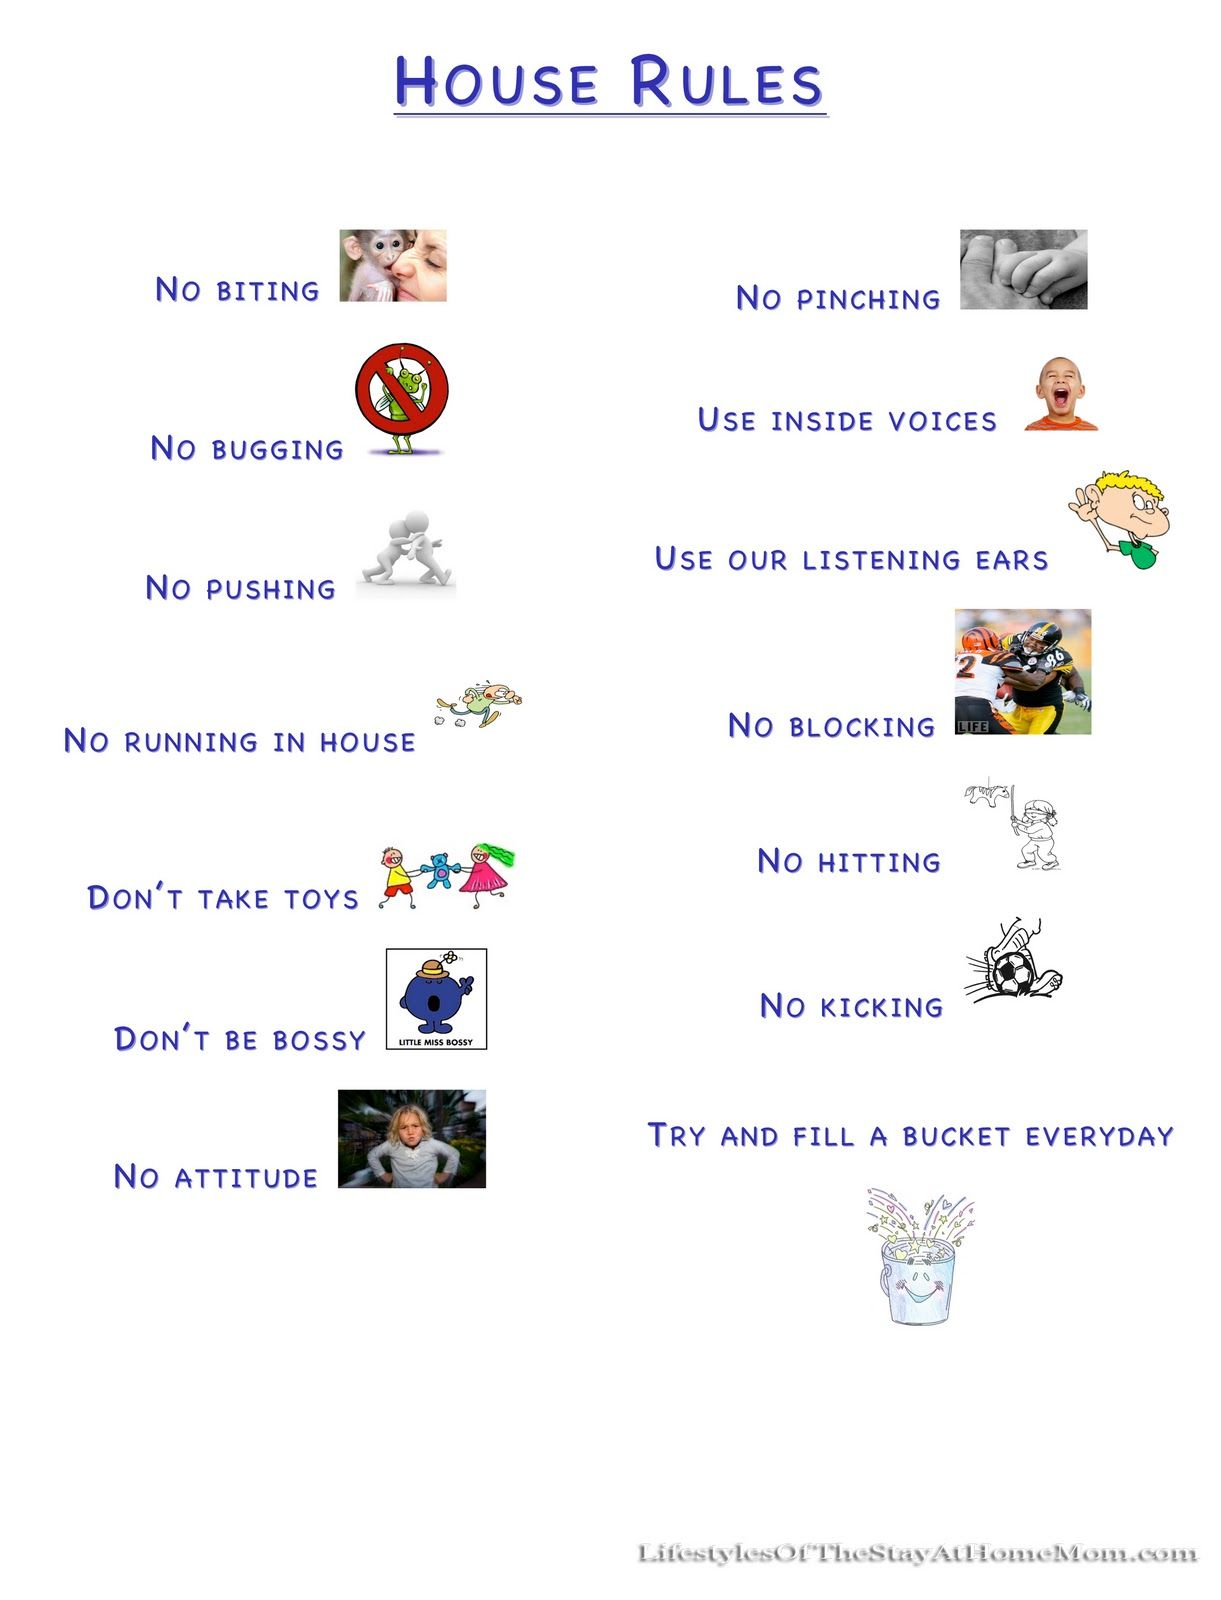 house rules for kids That's it! That's how we run things